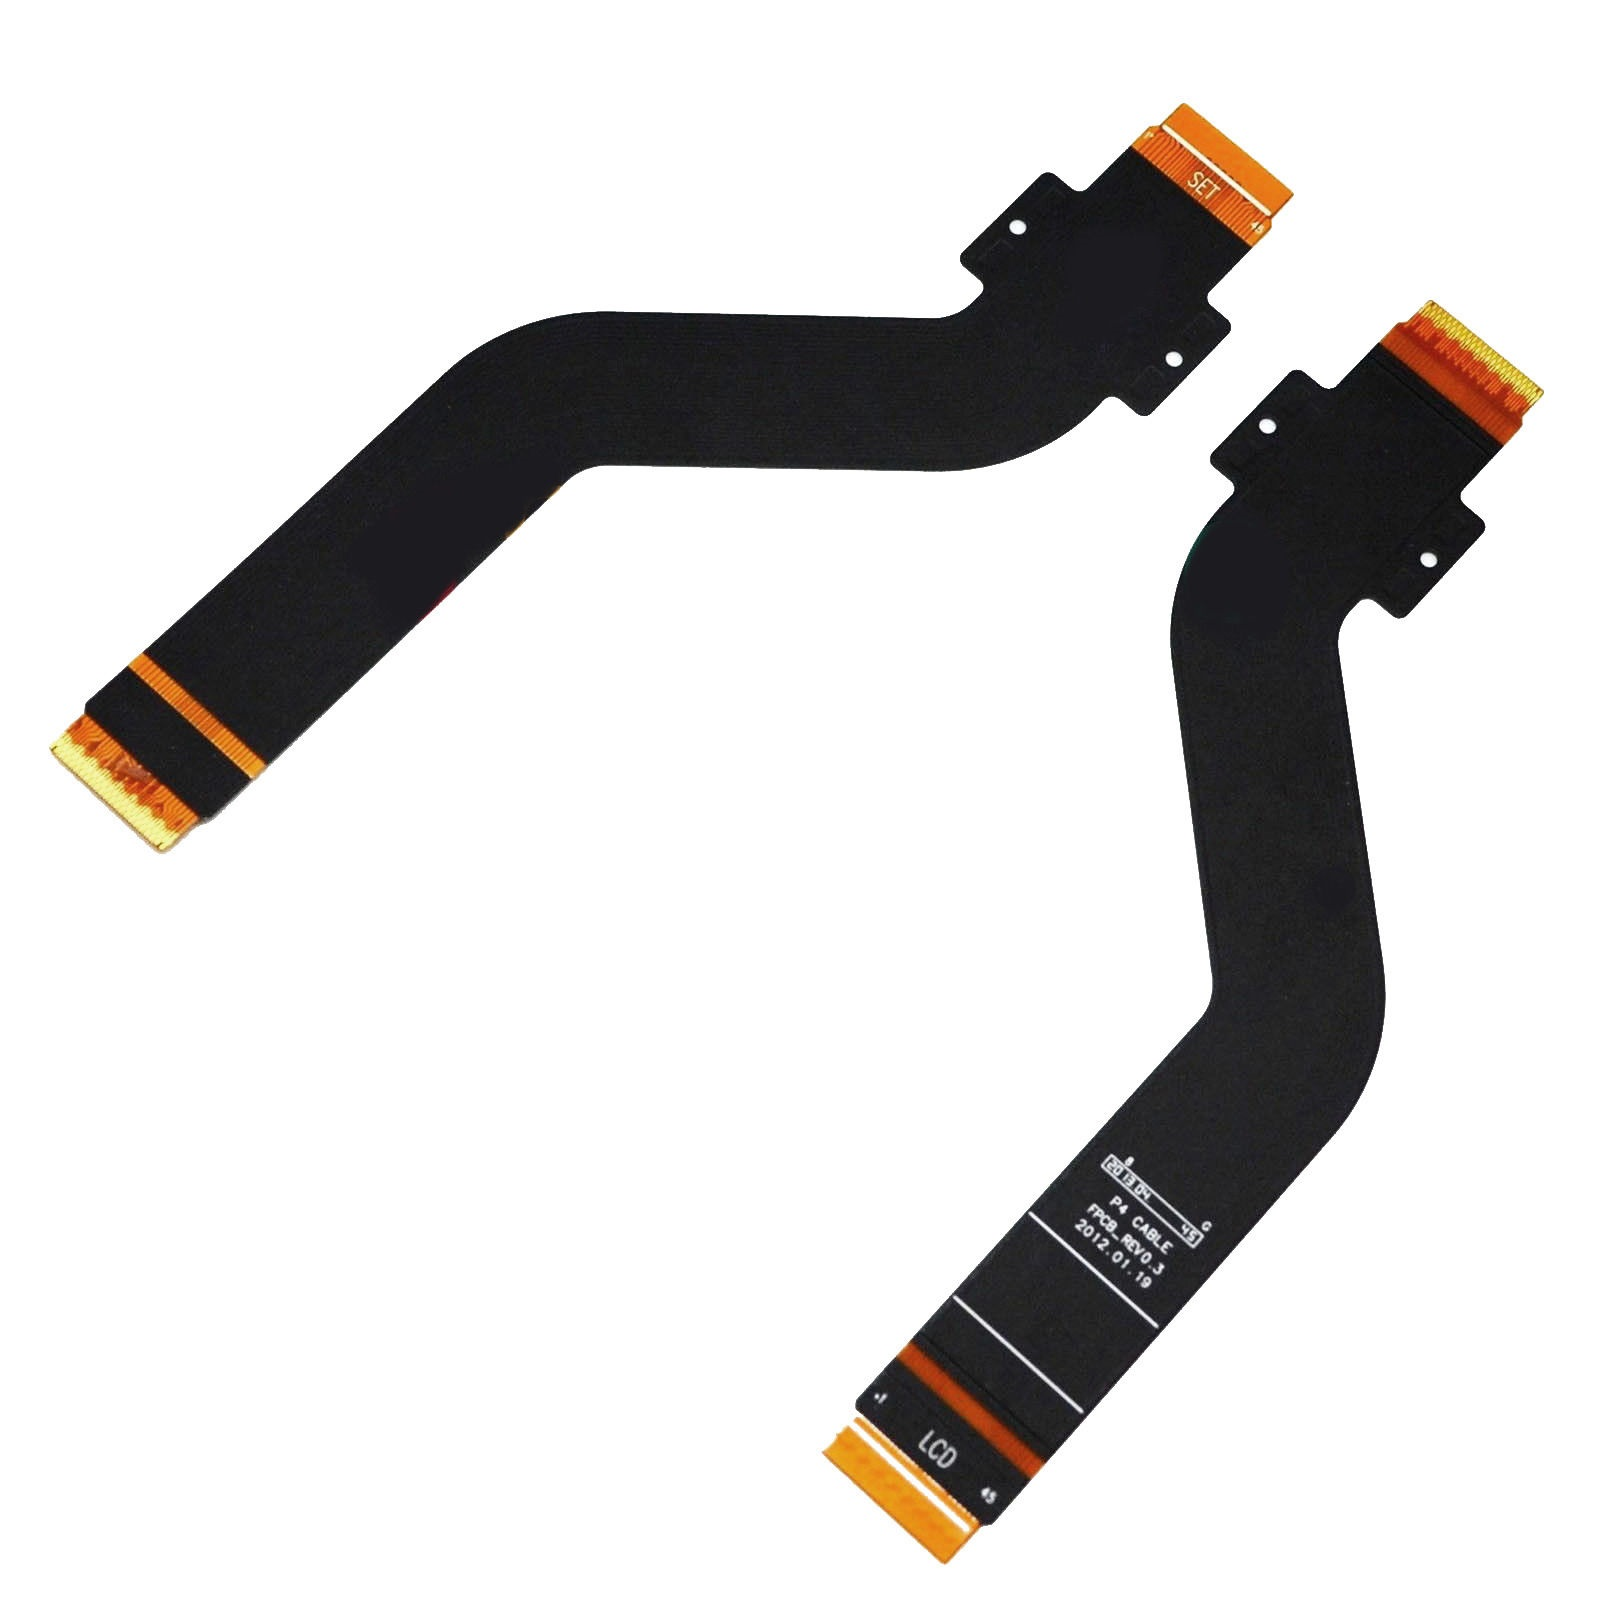 For Samsung Galaxy Tab 2 10.1 GT-P5100 P5110 LCD Screen Connection Connector Flex Cable Ribbon